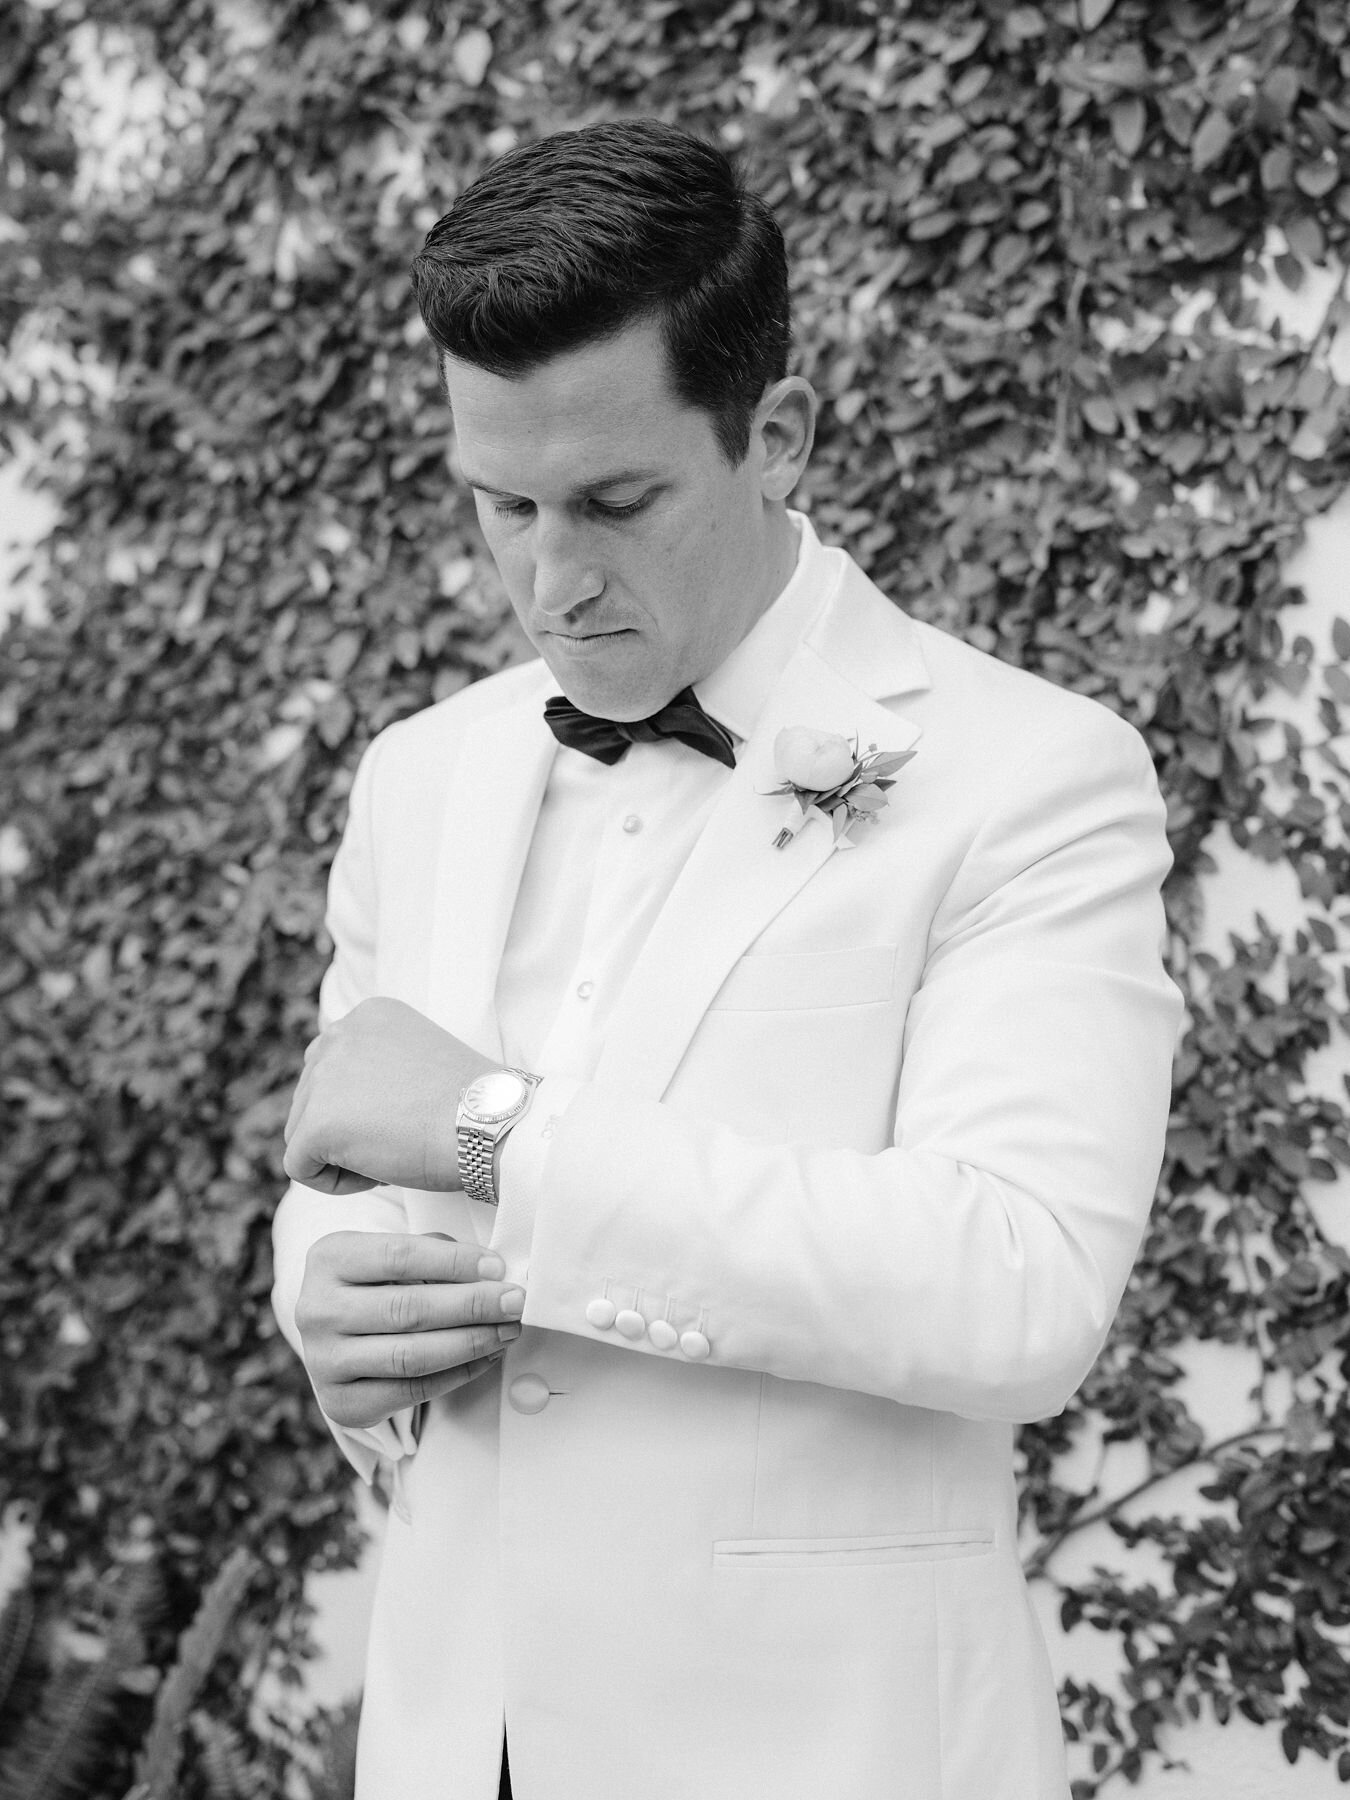 Our groom putting the finishes touches on before the first look